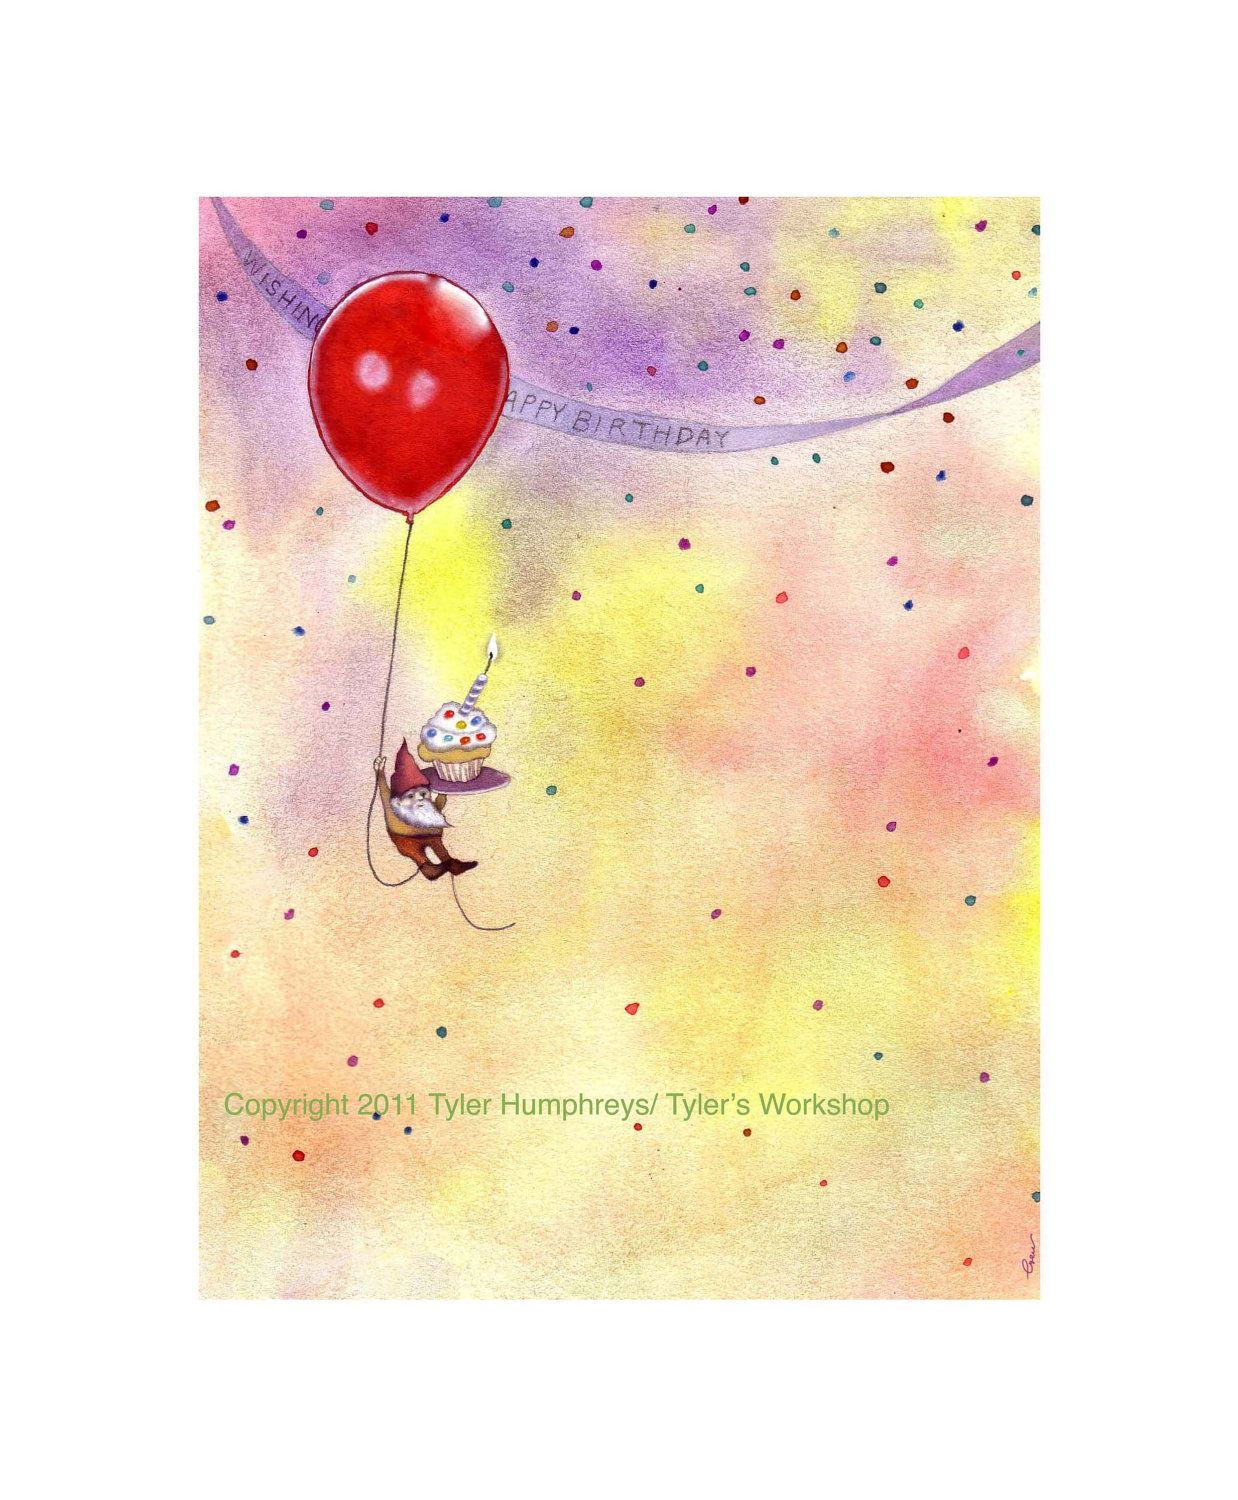 Birthday greeting card gnome birthday card funny gnome birthday greeting card gnome birthday card funny gnome watercolor illustration print 350 bookmarktalkfo Image collections